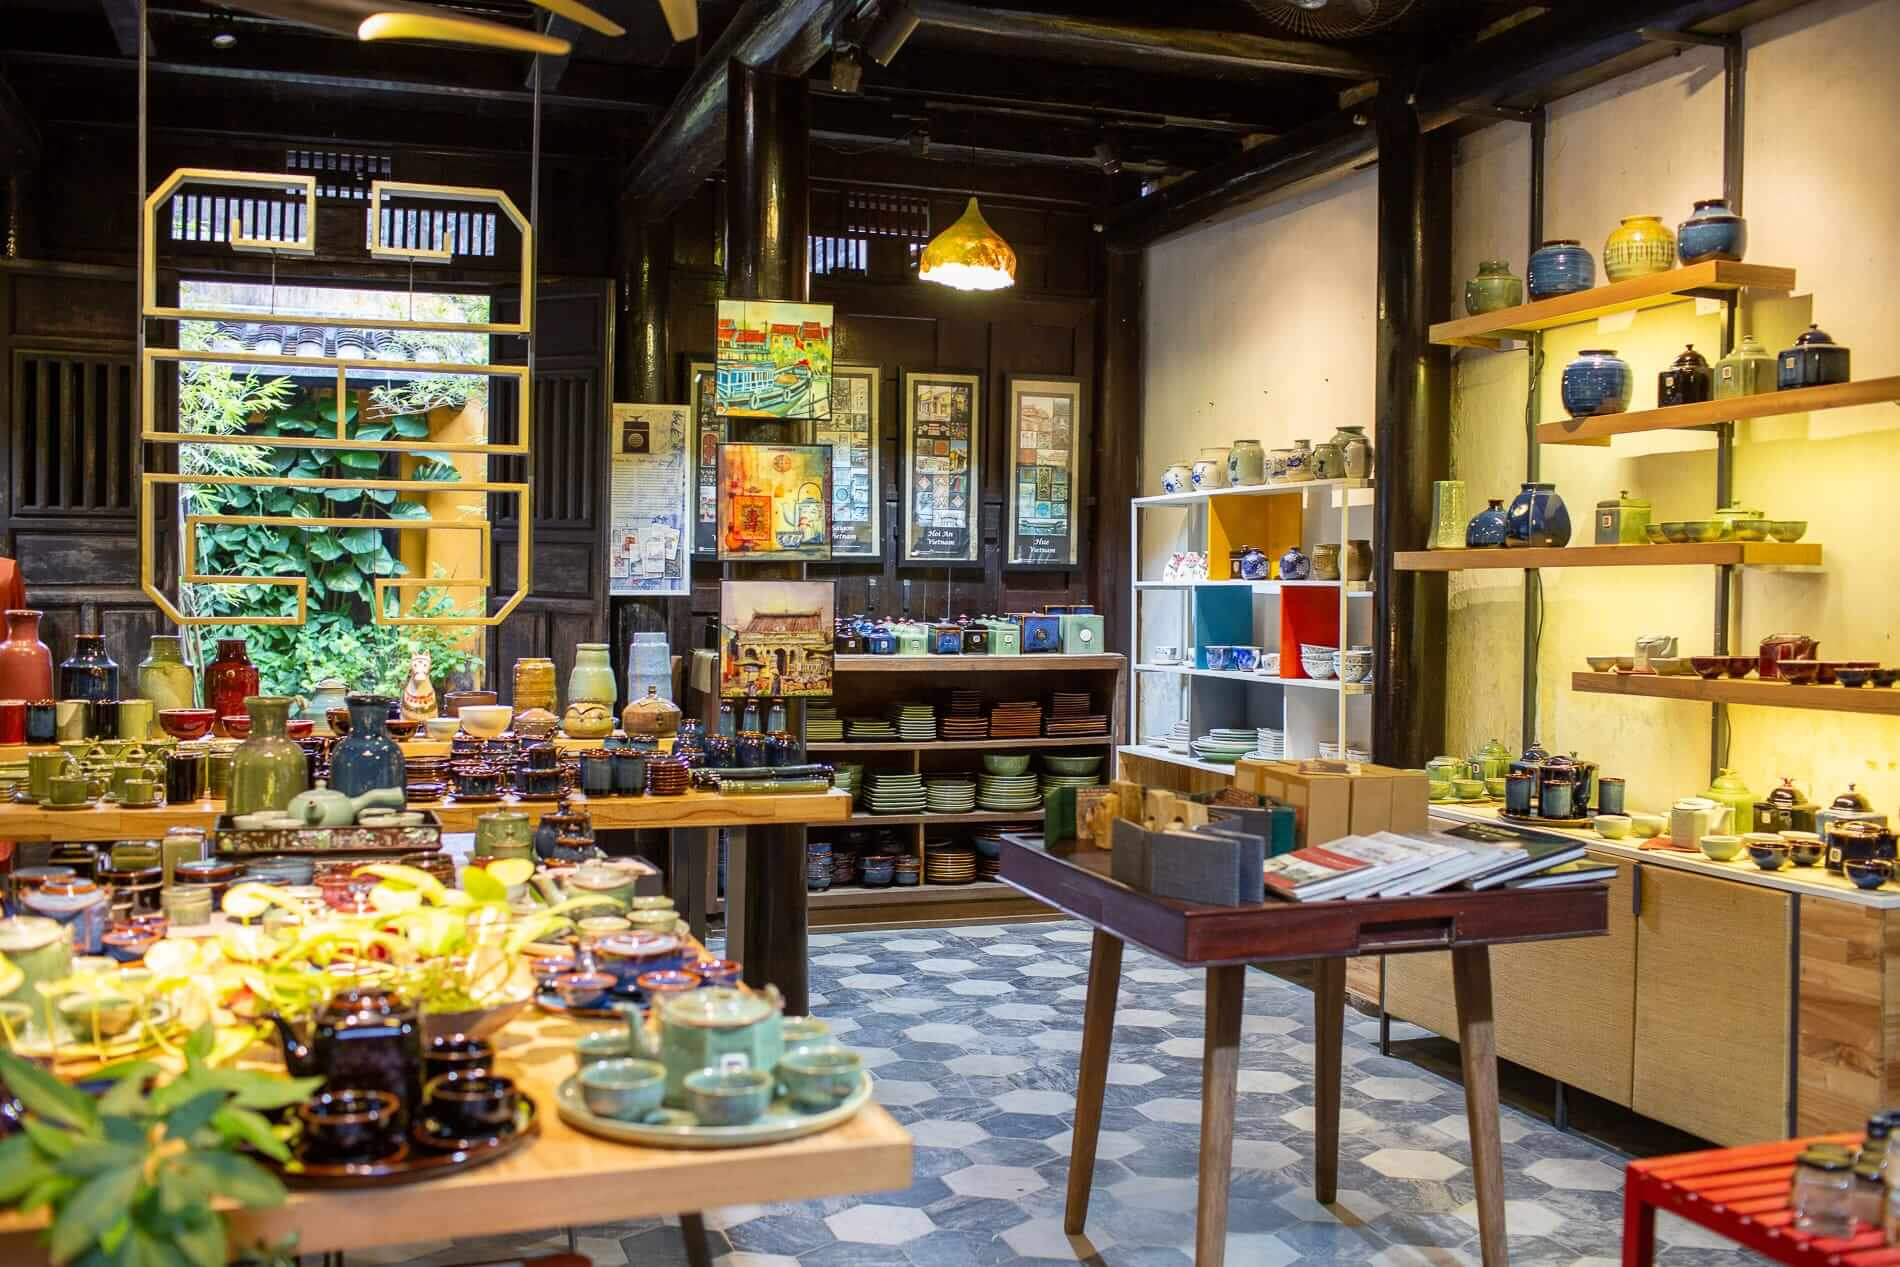 Main shop at Cotic Art Space - Premium Brands in Hoi An